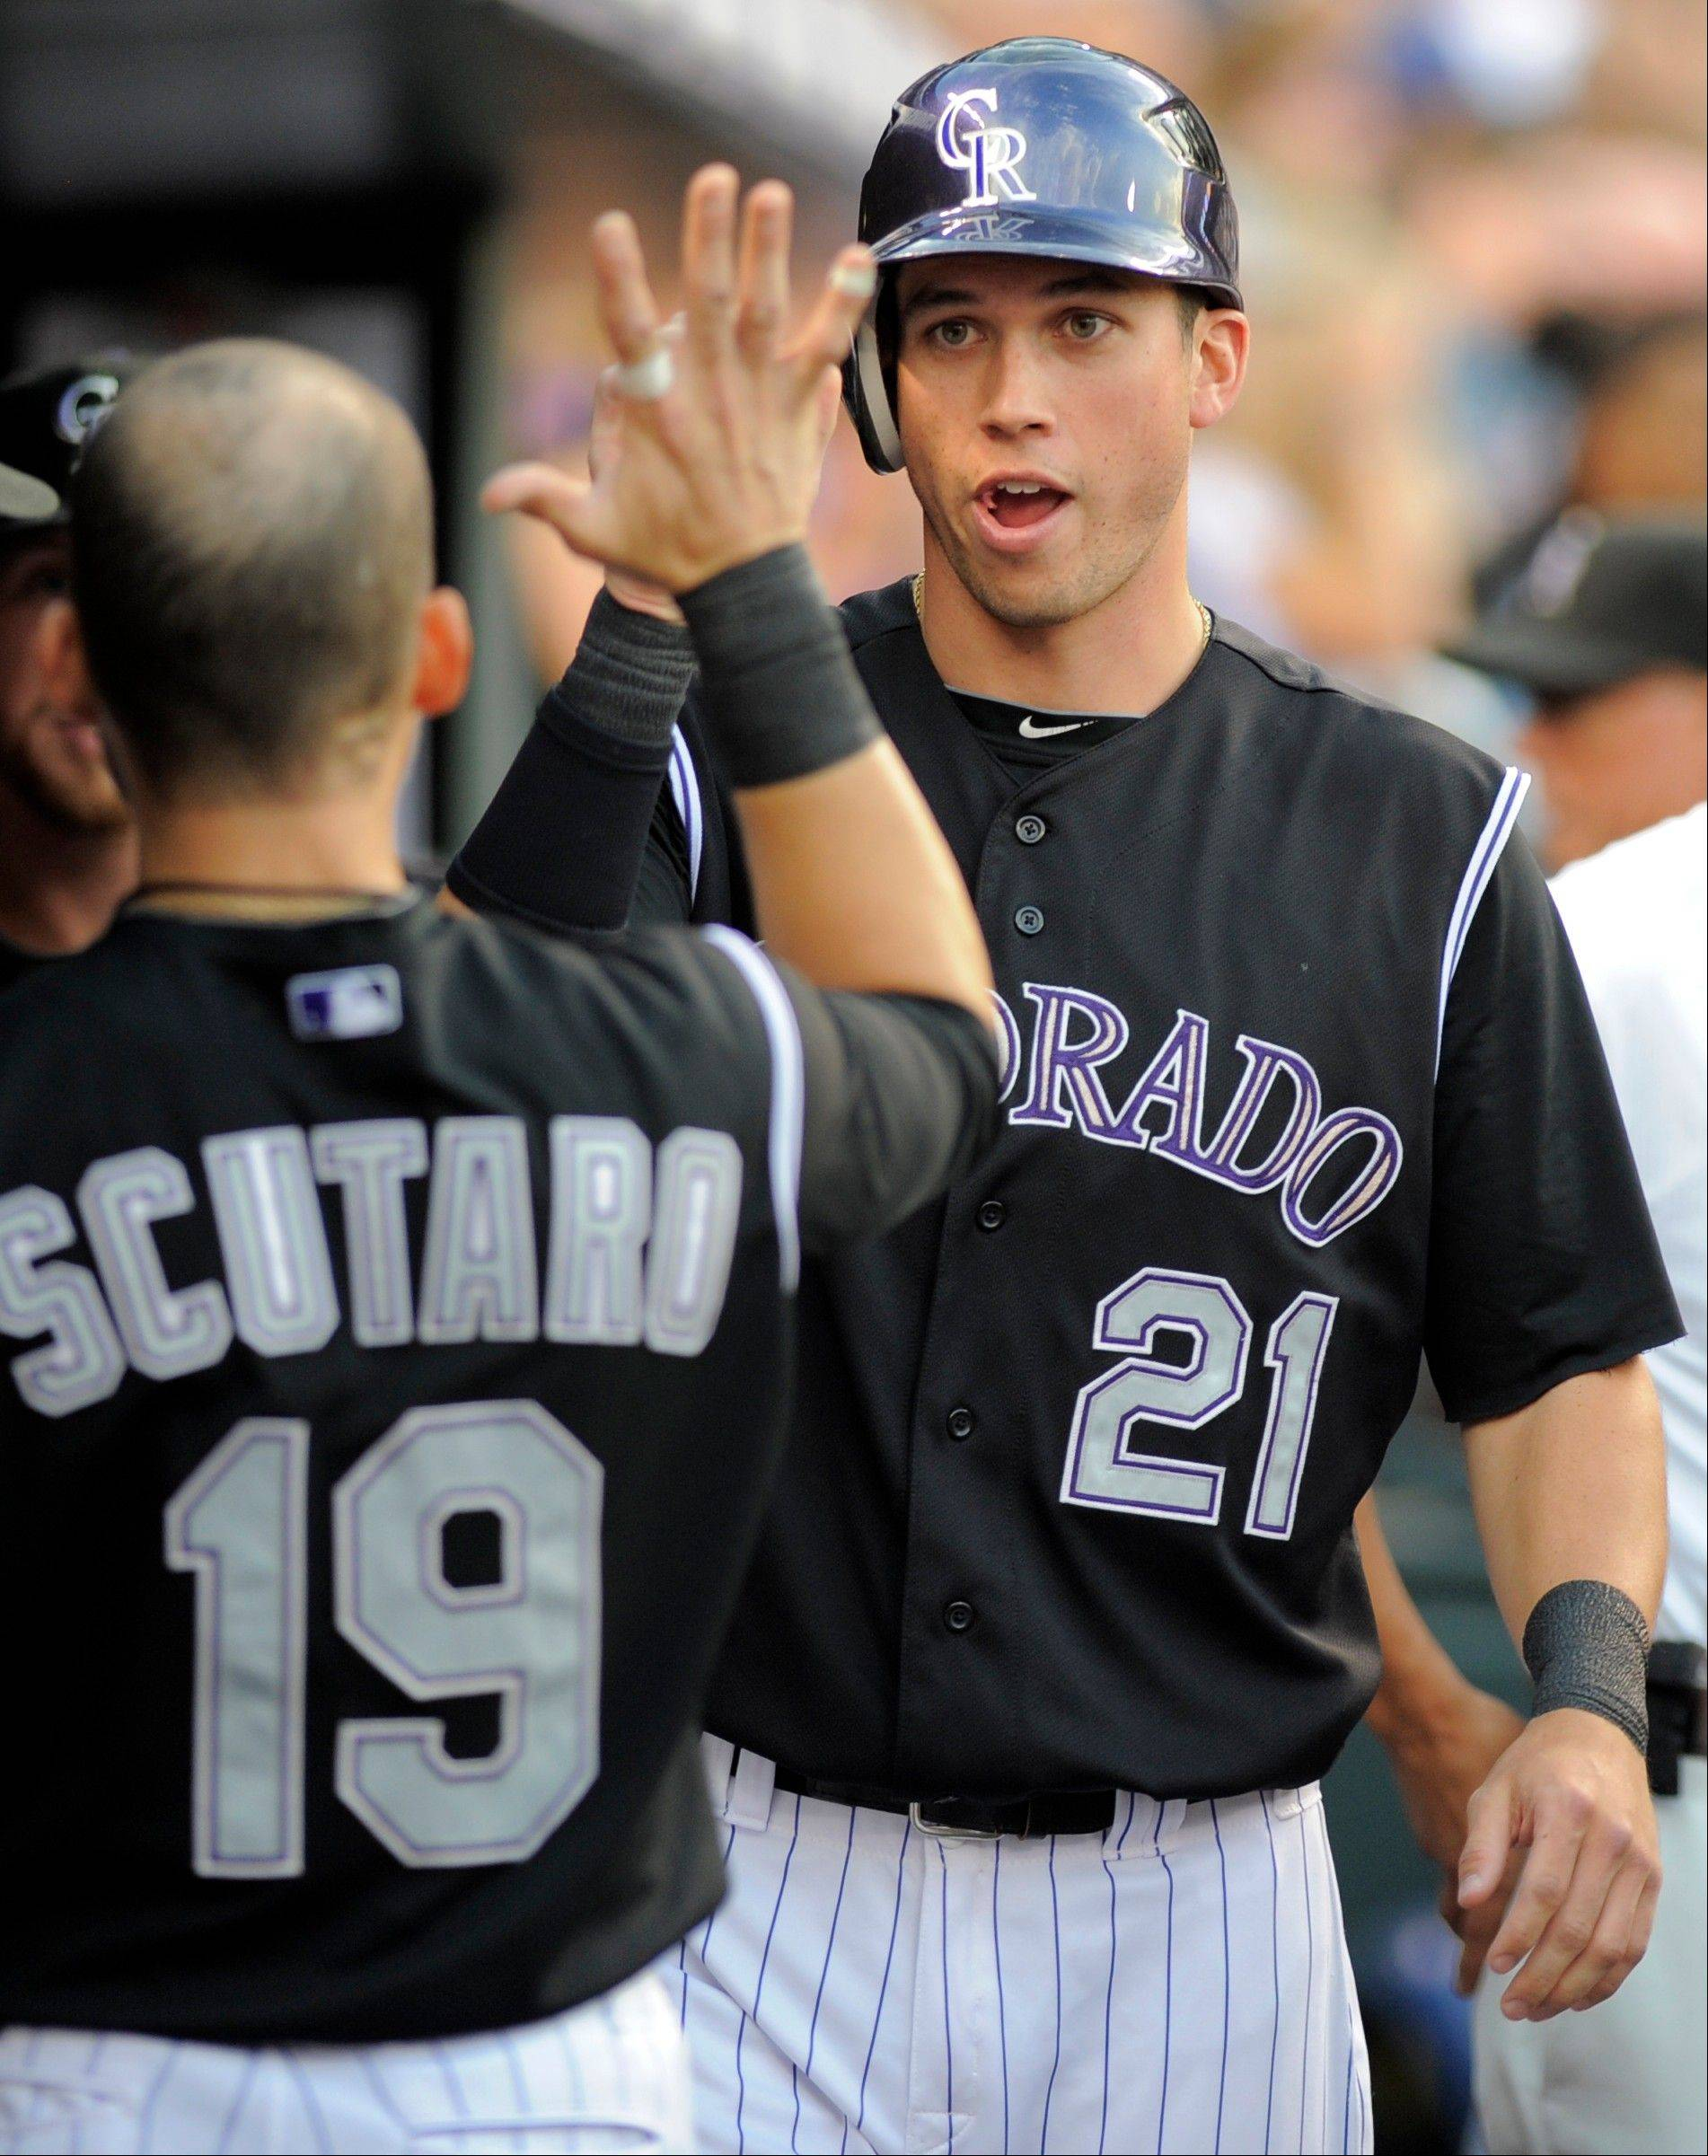 The Rockies' Tyler Colvin is congratulated by Marco Scutaro (19) after scoring a run against the San Diego Padres during the sixth inning of a baseball game in Denver, Friday, June 29, 2012.